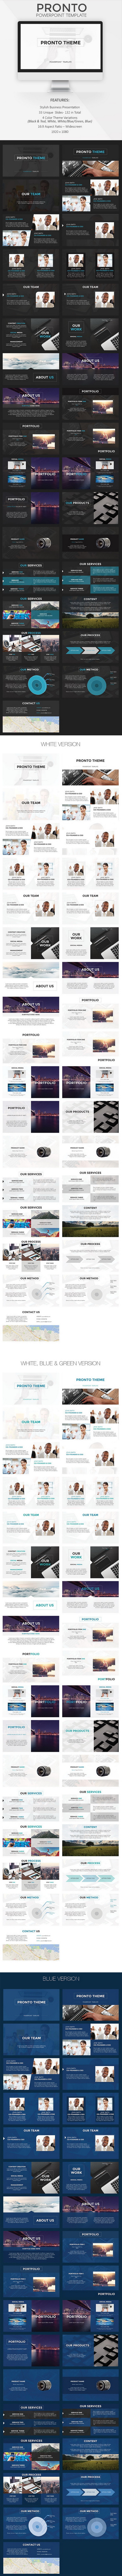 Pronto - Business Powerpoint Template - Business PowerPoint Templates